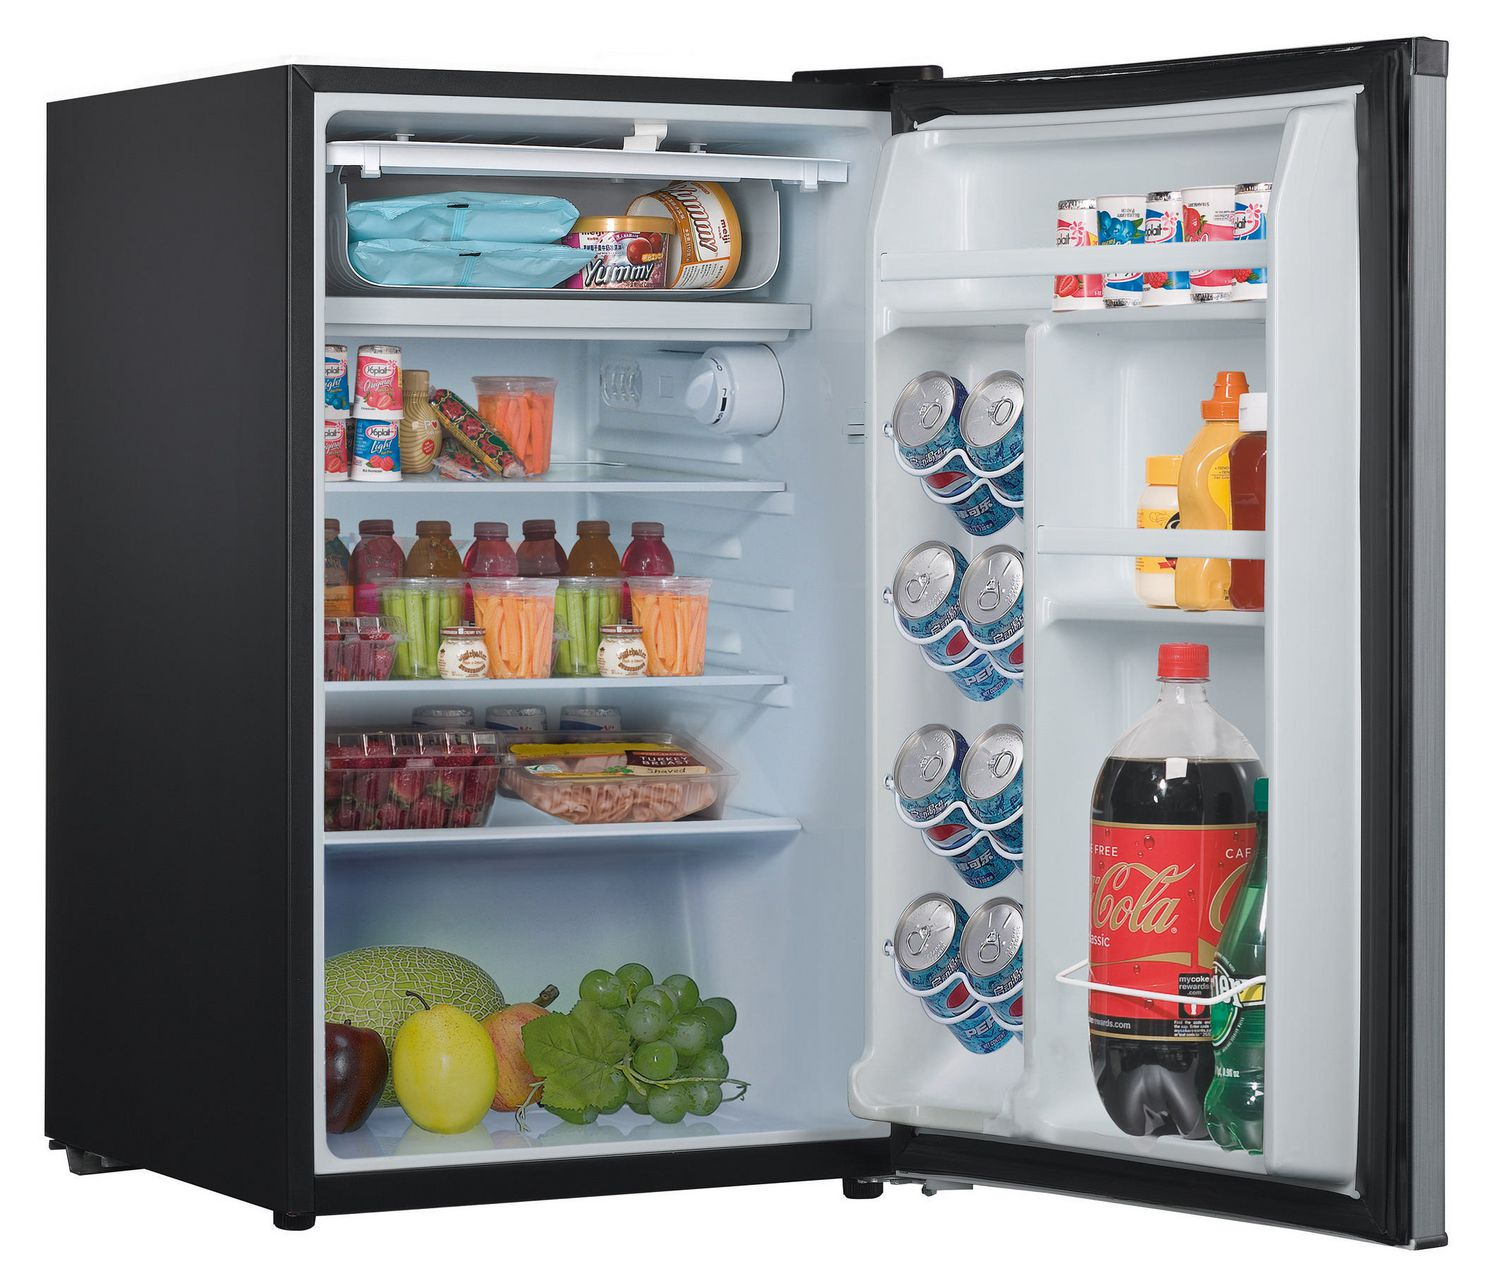 Whirlpool Energy Star 4.3 cu. ft. Compact Refrigerator | Walmart ...